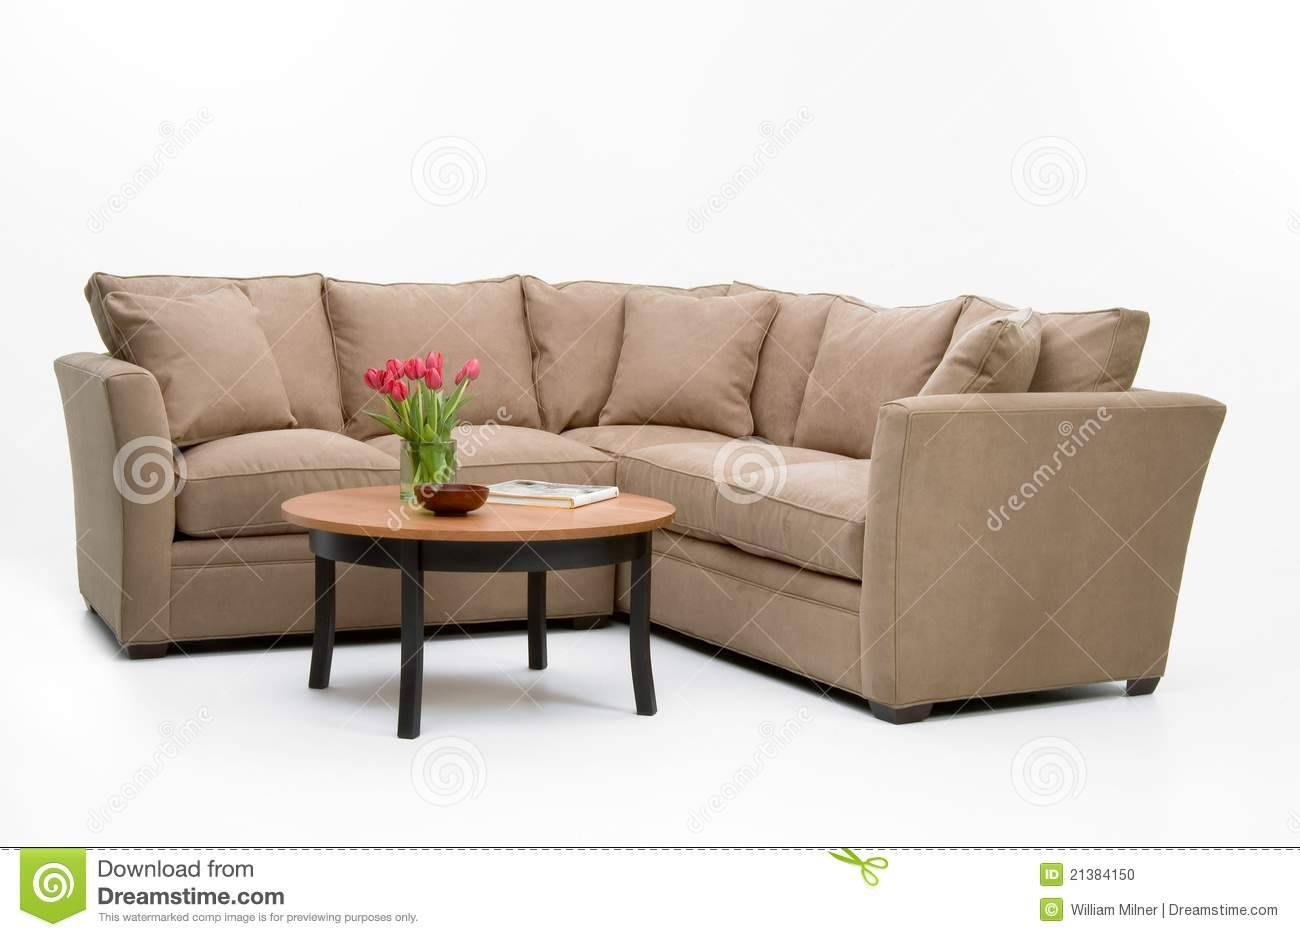 Chair Fabric Sofa Set Table Stock Photo Image 21384150 Kitchen with regard to Sofa Table With Chairs (Image 9 of 30)